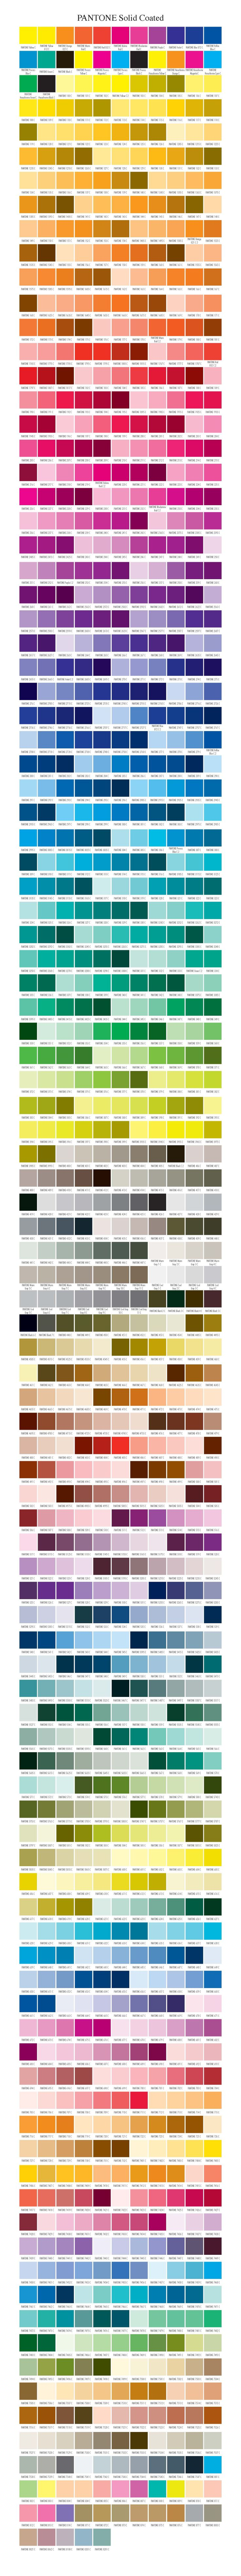 Pantone Solid Coated Swatches